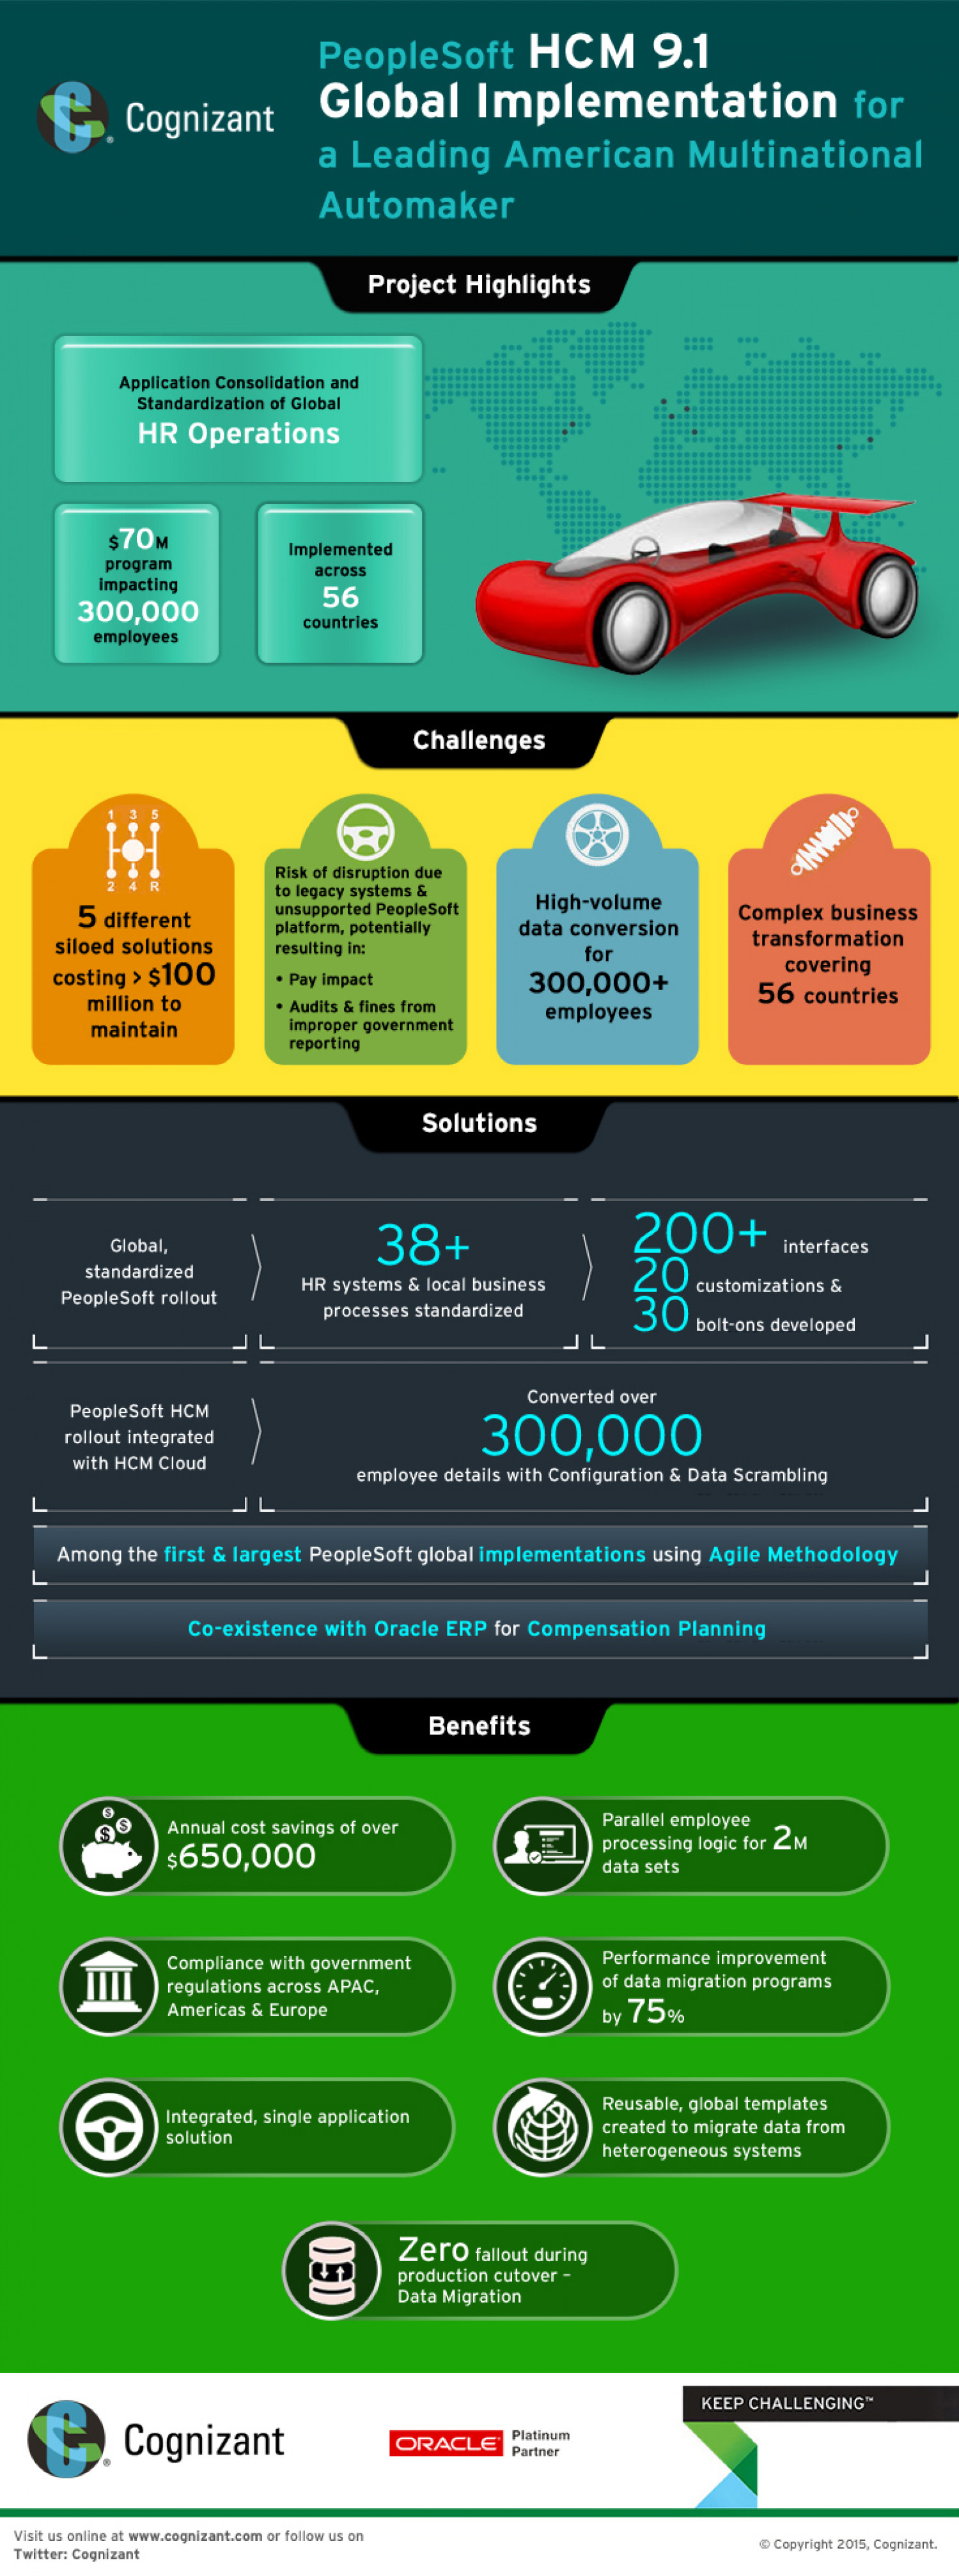 PeopleSoft HCM 9.1 Global Implementation For A Leading American Multinational Automaker. Infographic